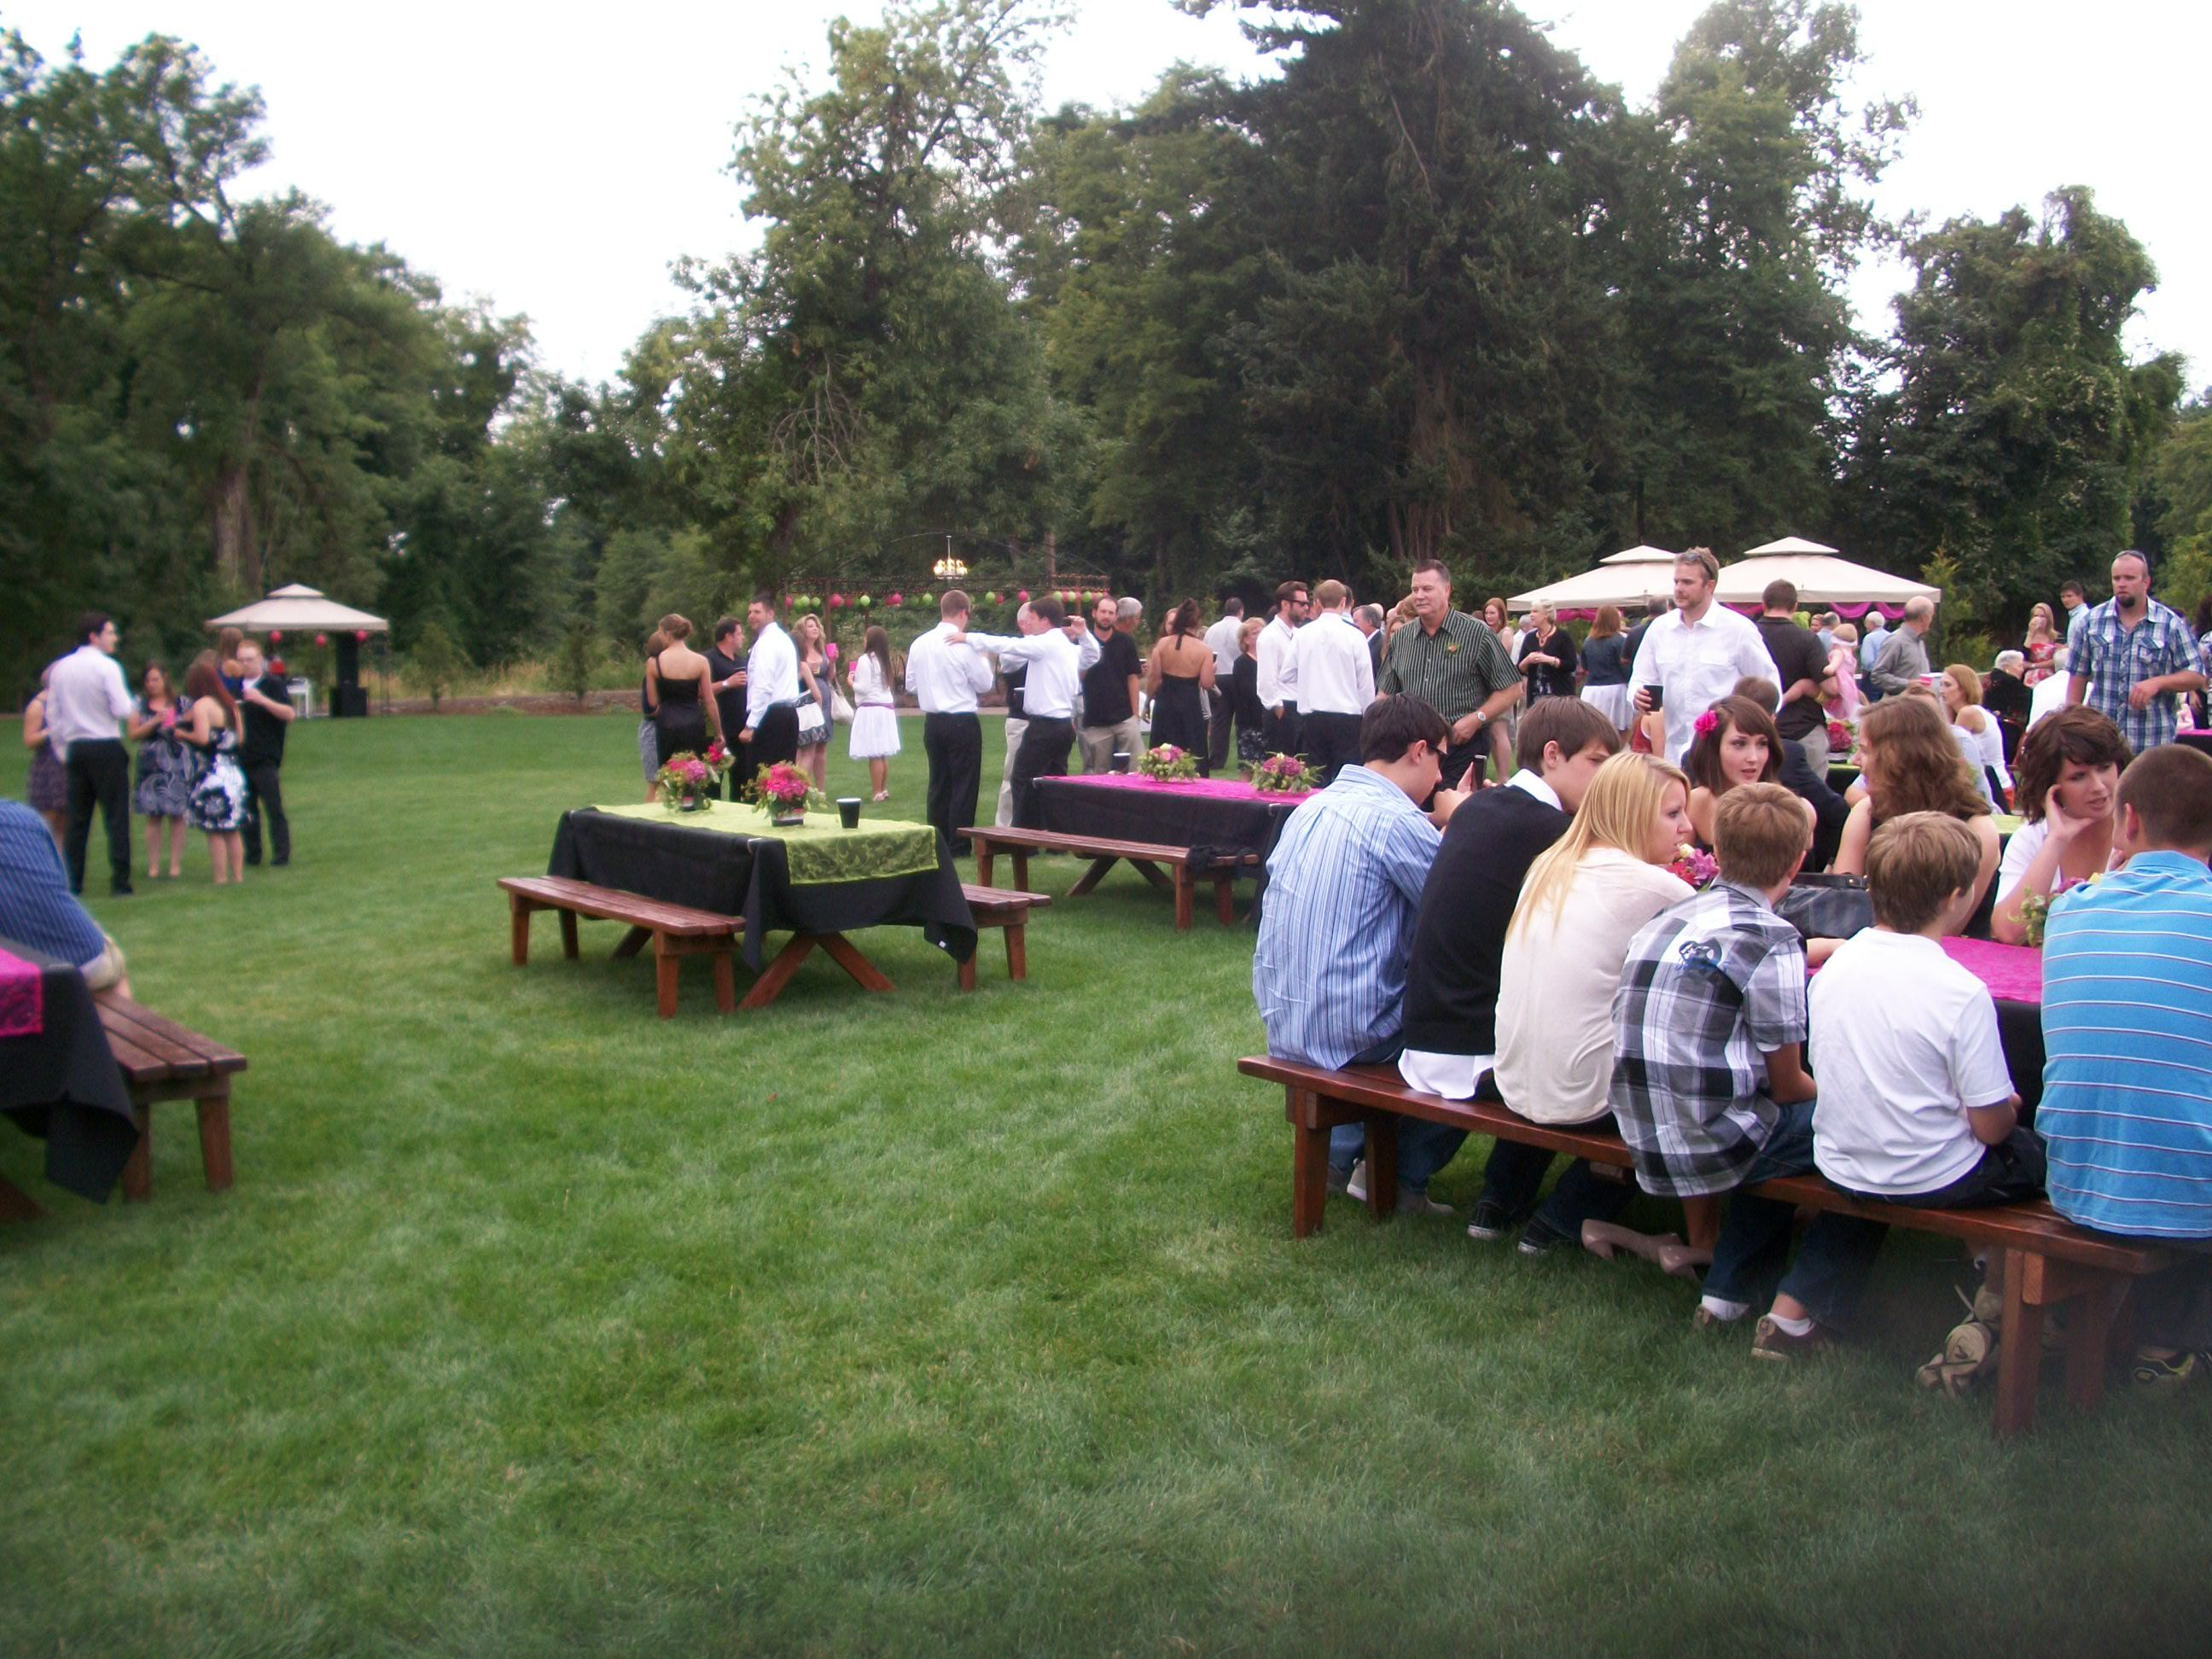 Elegant Wedding With Picnic Tables And Benches | ... Picnic Tables (  Covered With